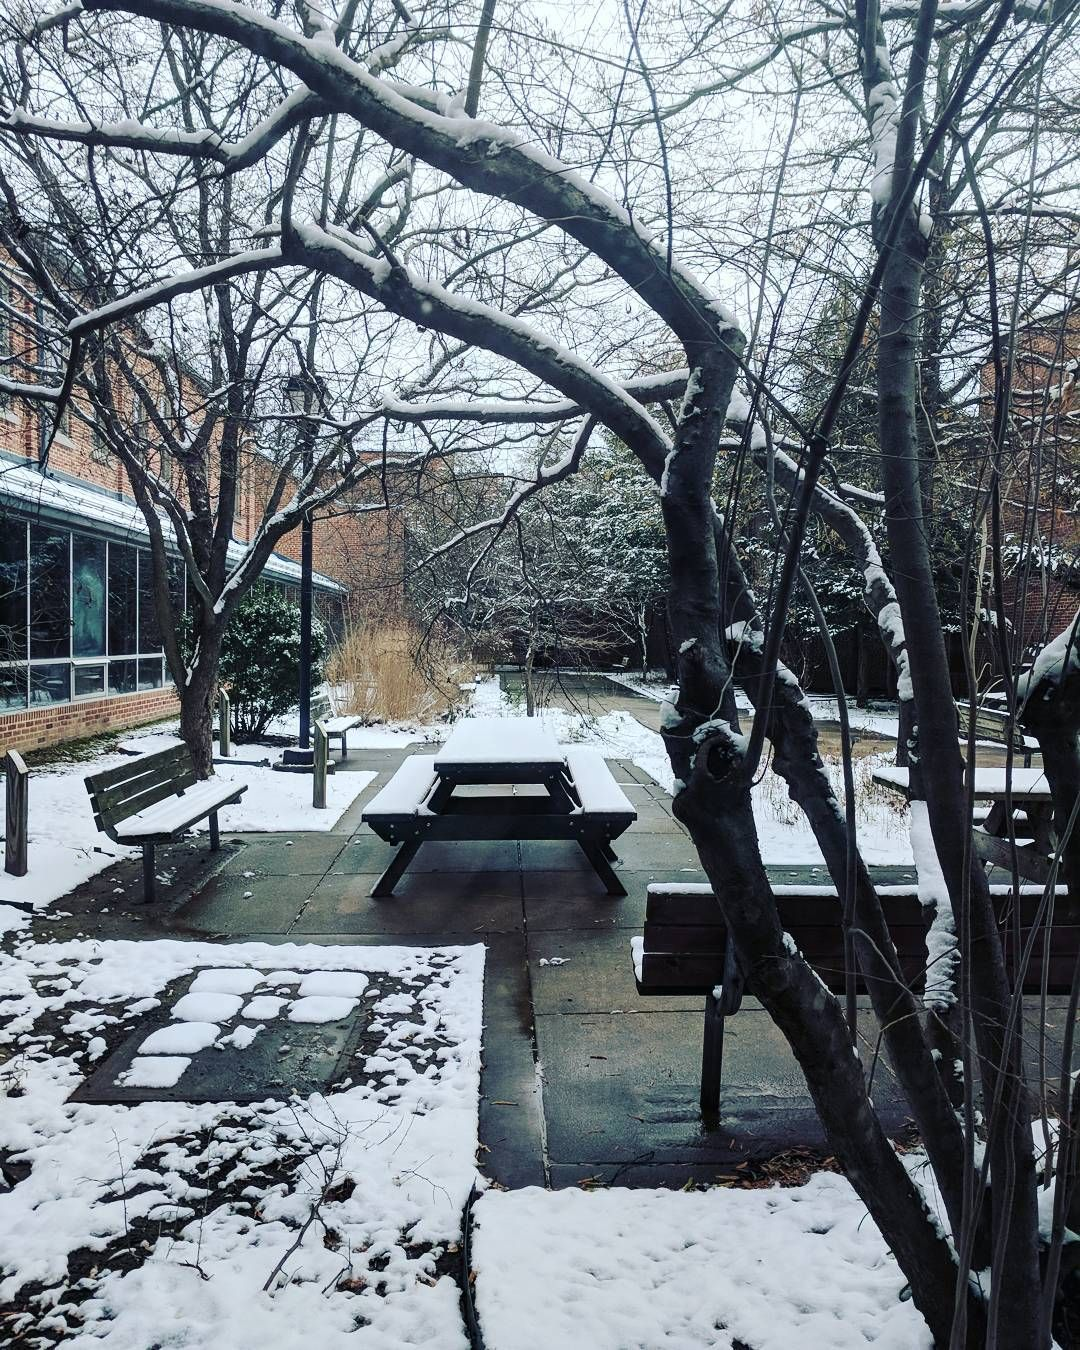 Affinity At Winter Park Home: Minor Snowfall. Work Courtyard. Winter Still Technically A